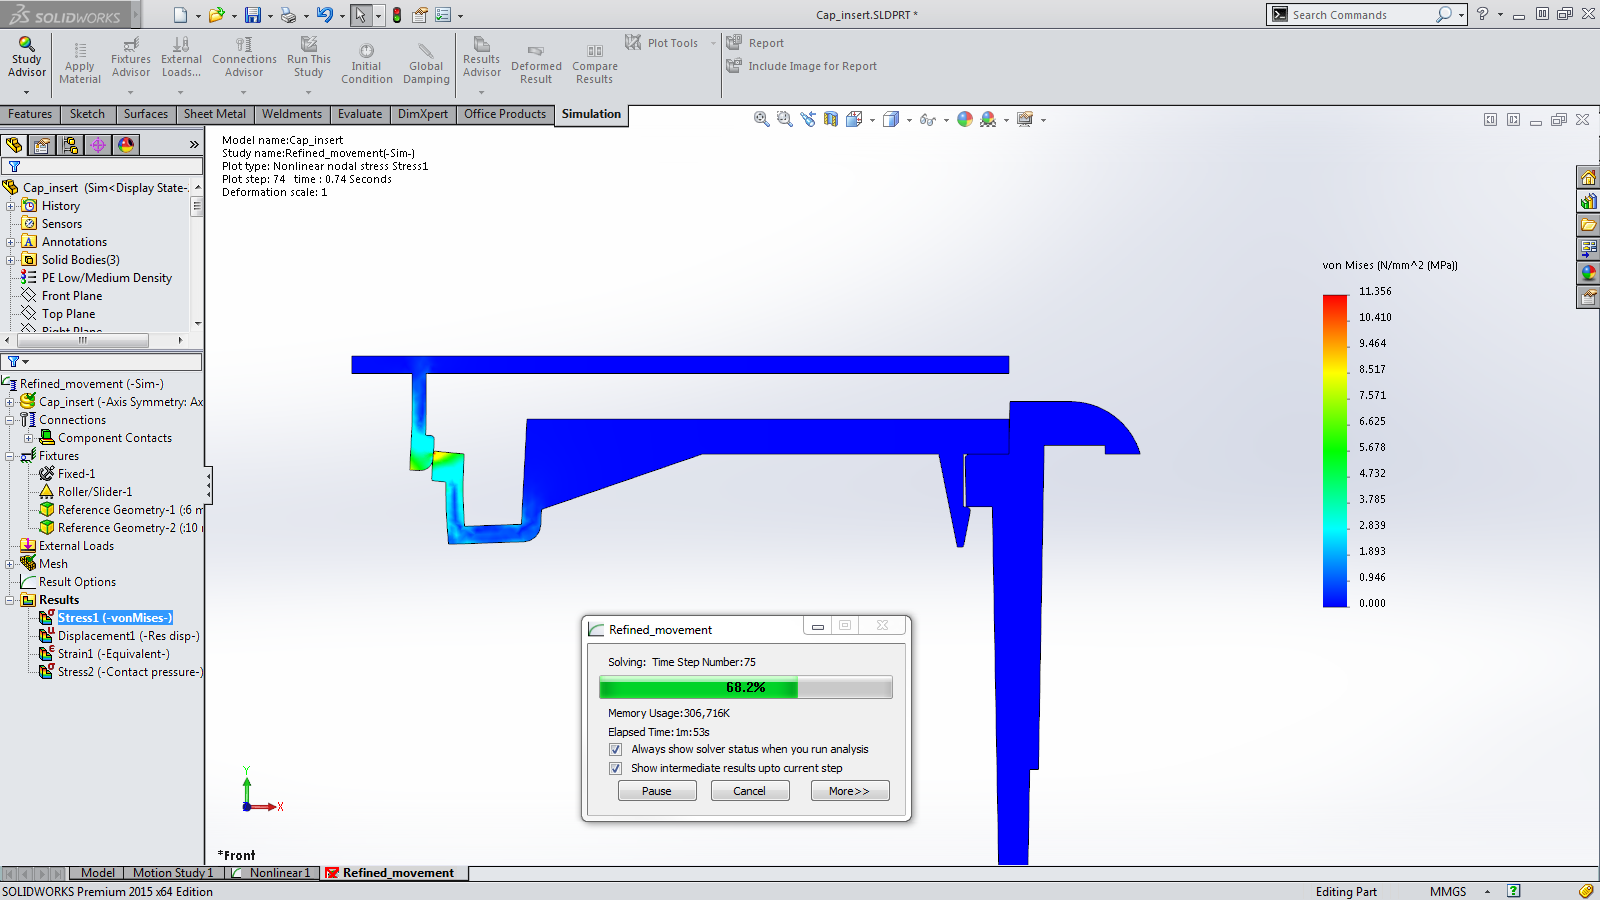 Sneak Peek: 15 Features coming in SOLIDWORKS 2015 – Incremental Simulation Results